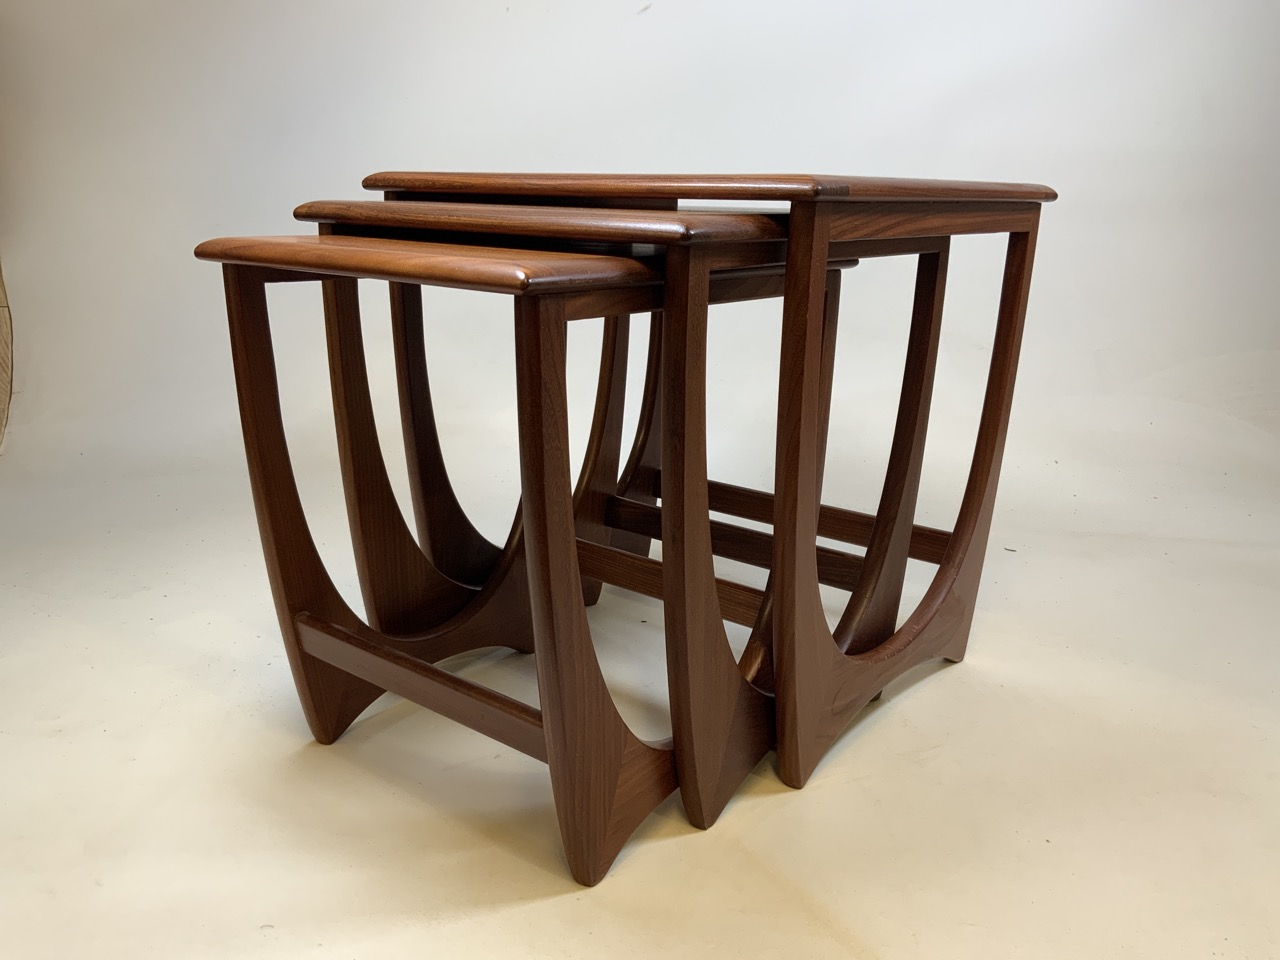 A G Plan mid century nest of three tables with tiled top table. W:50cm x D:50cm x H:51cm